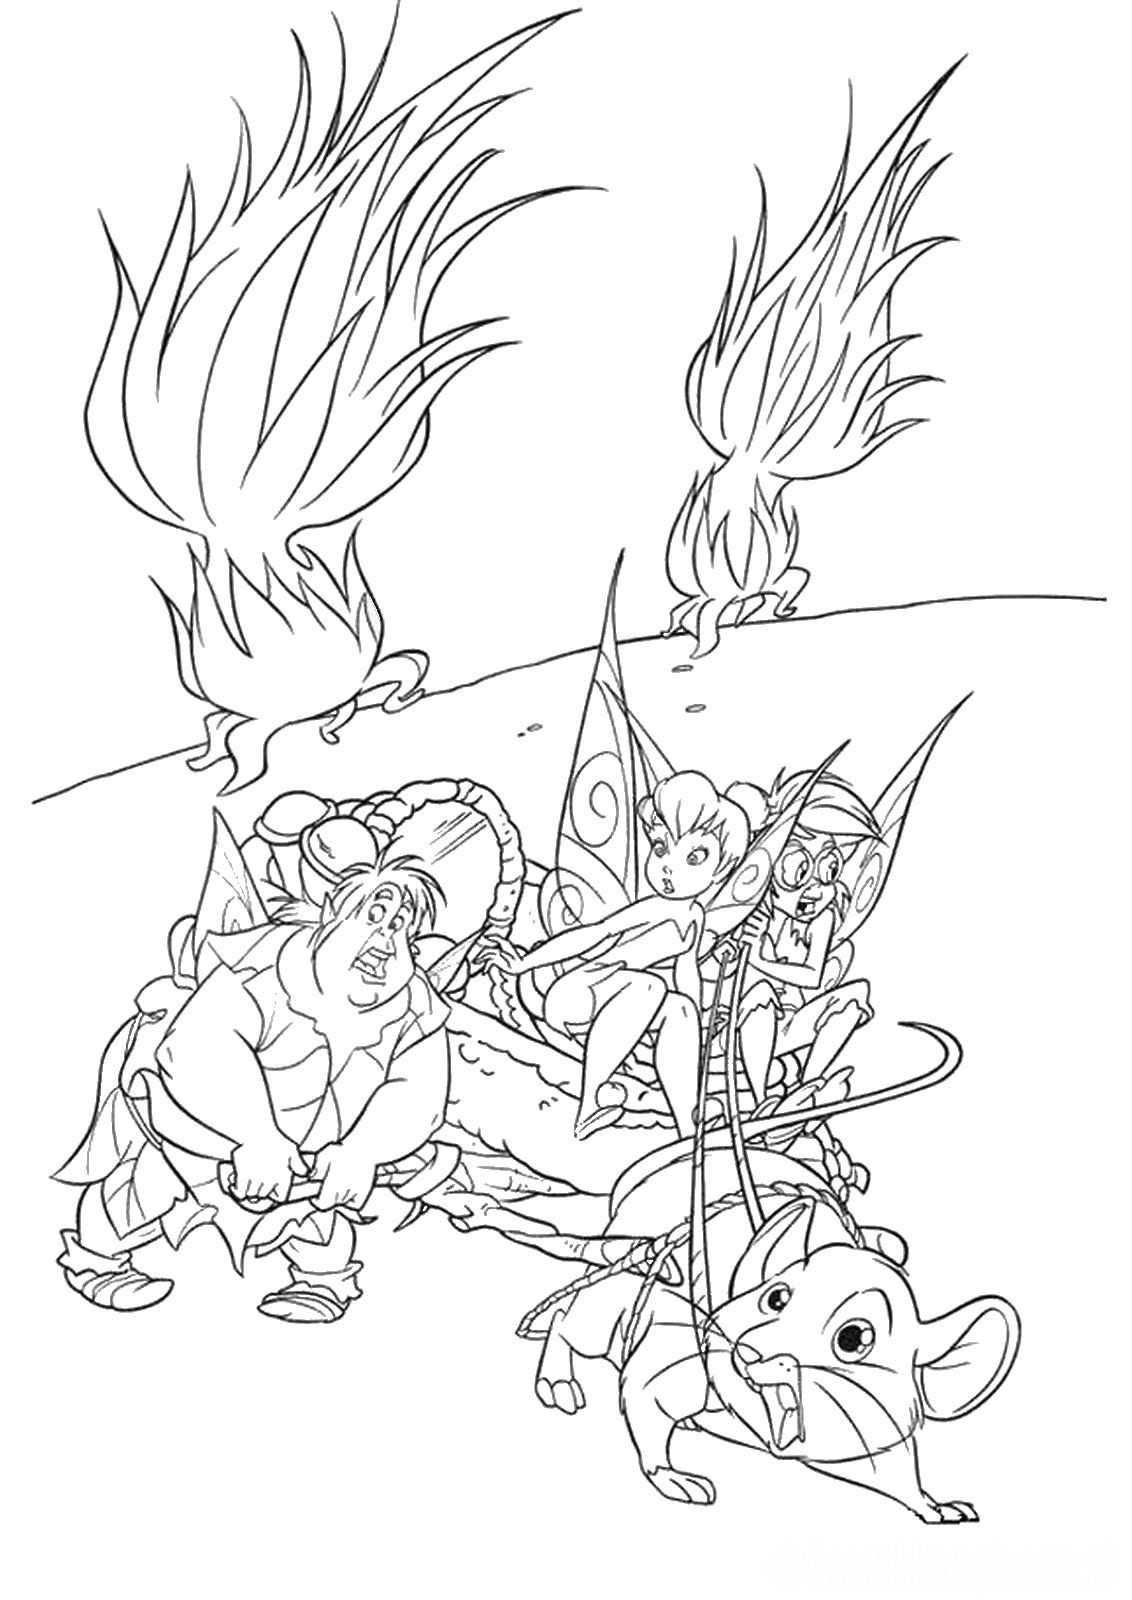 tinkerbell coloring book 30 tinkerbell coloring pages free coloring pages free tinkerbell book coloring